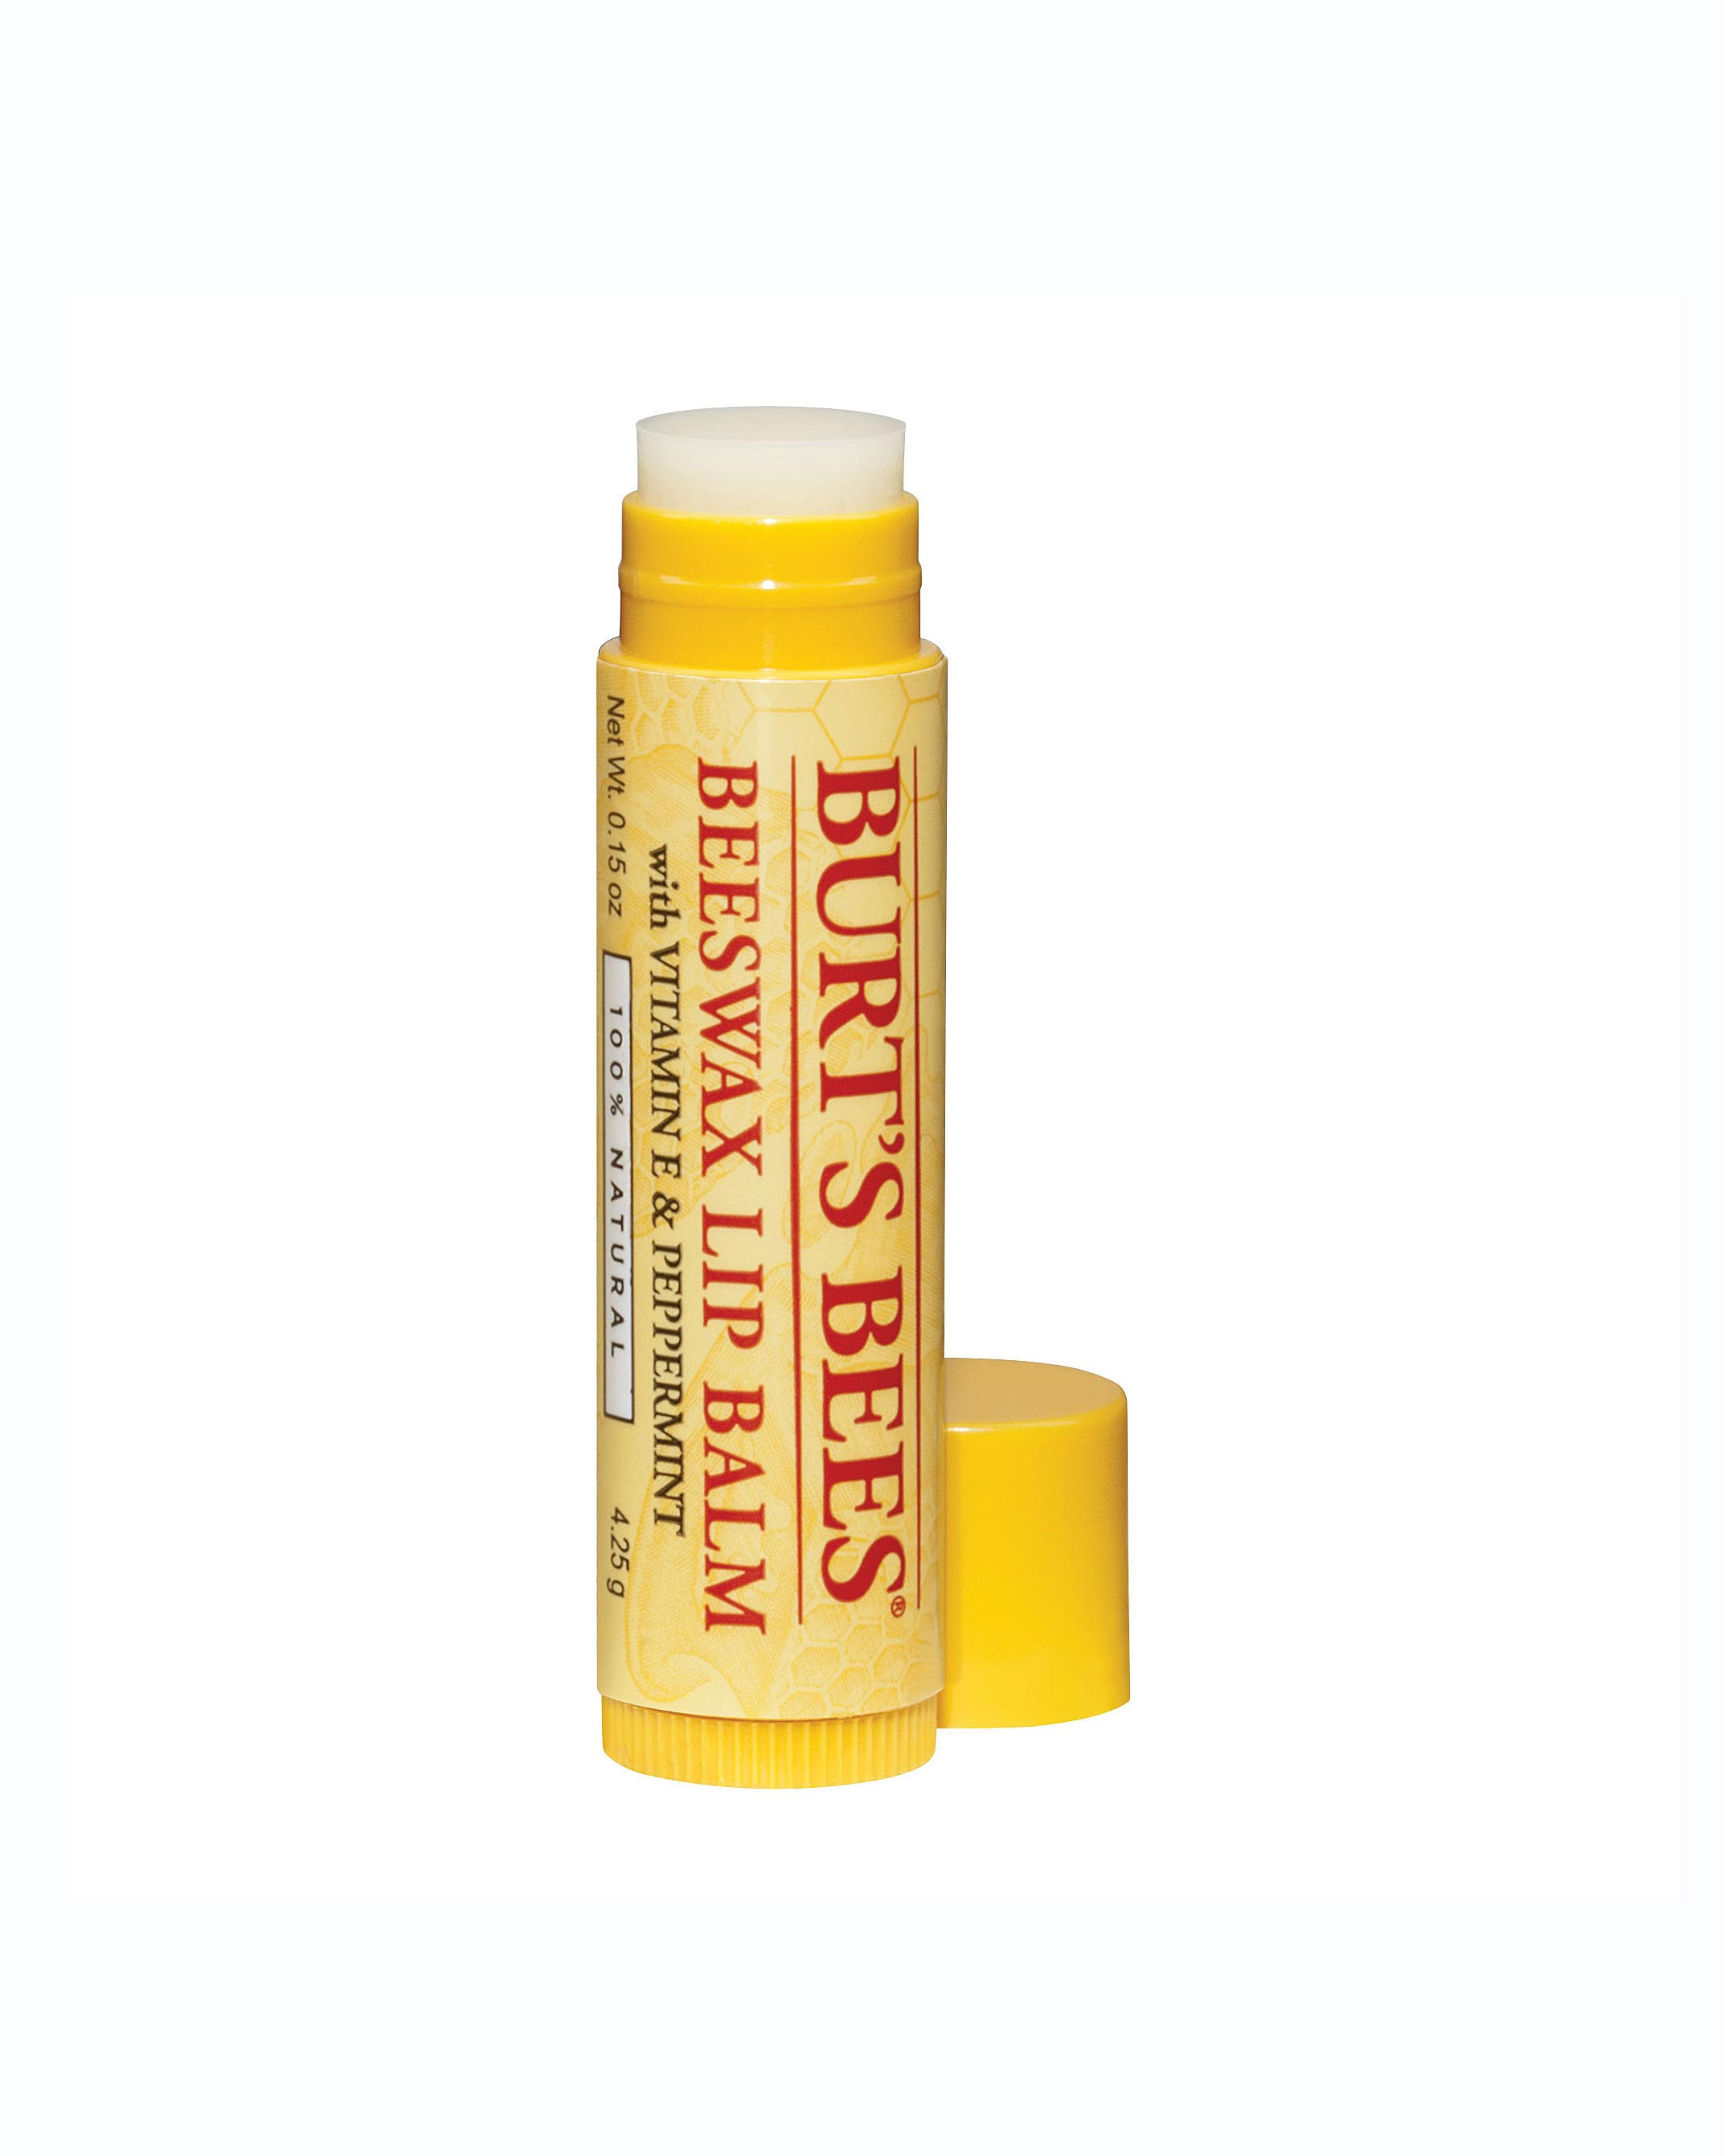 big-day-beauty-awards-burts-bees-beeswax-lip-balm-0216.jpg